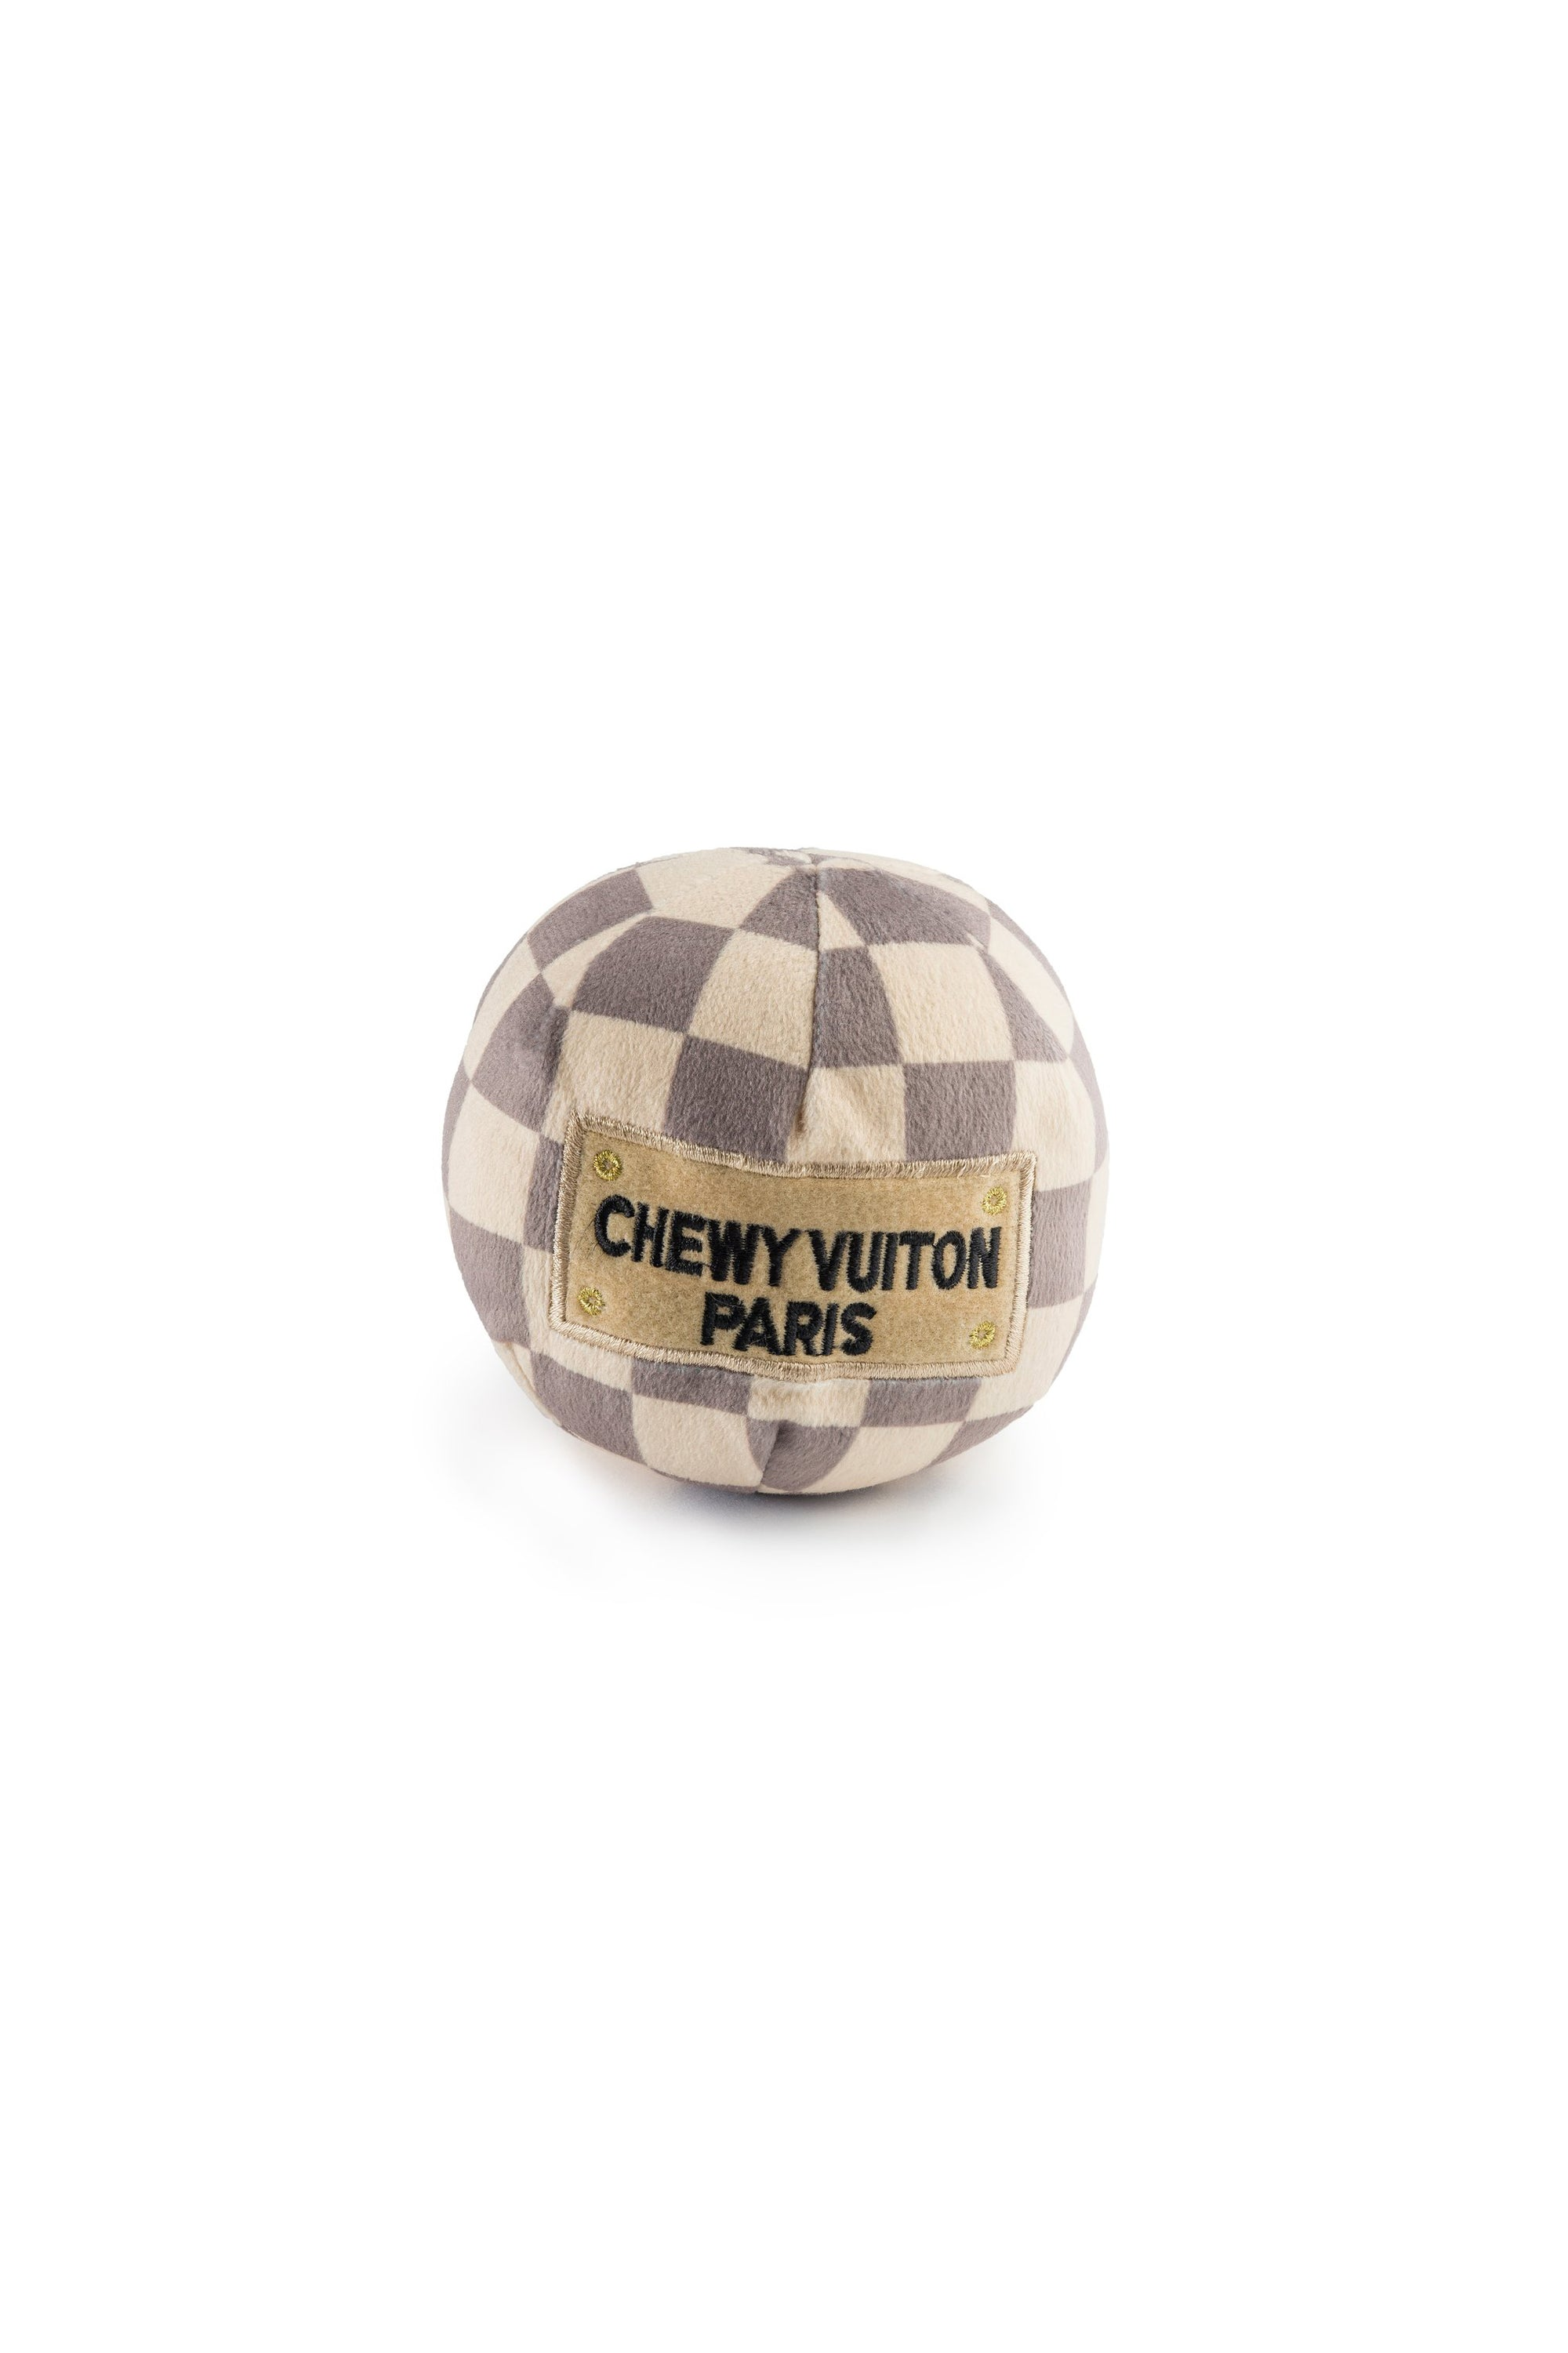 chewy vuiton dog toy checkered, final sale